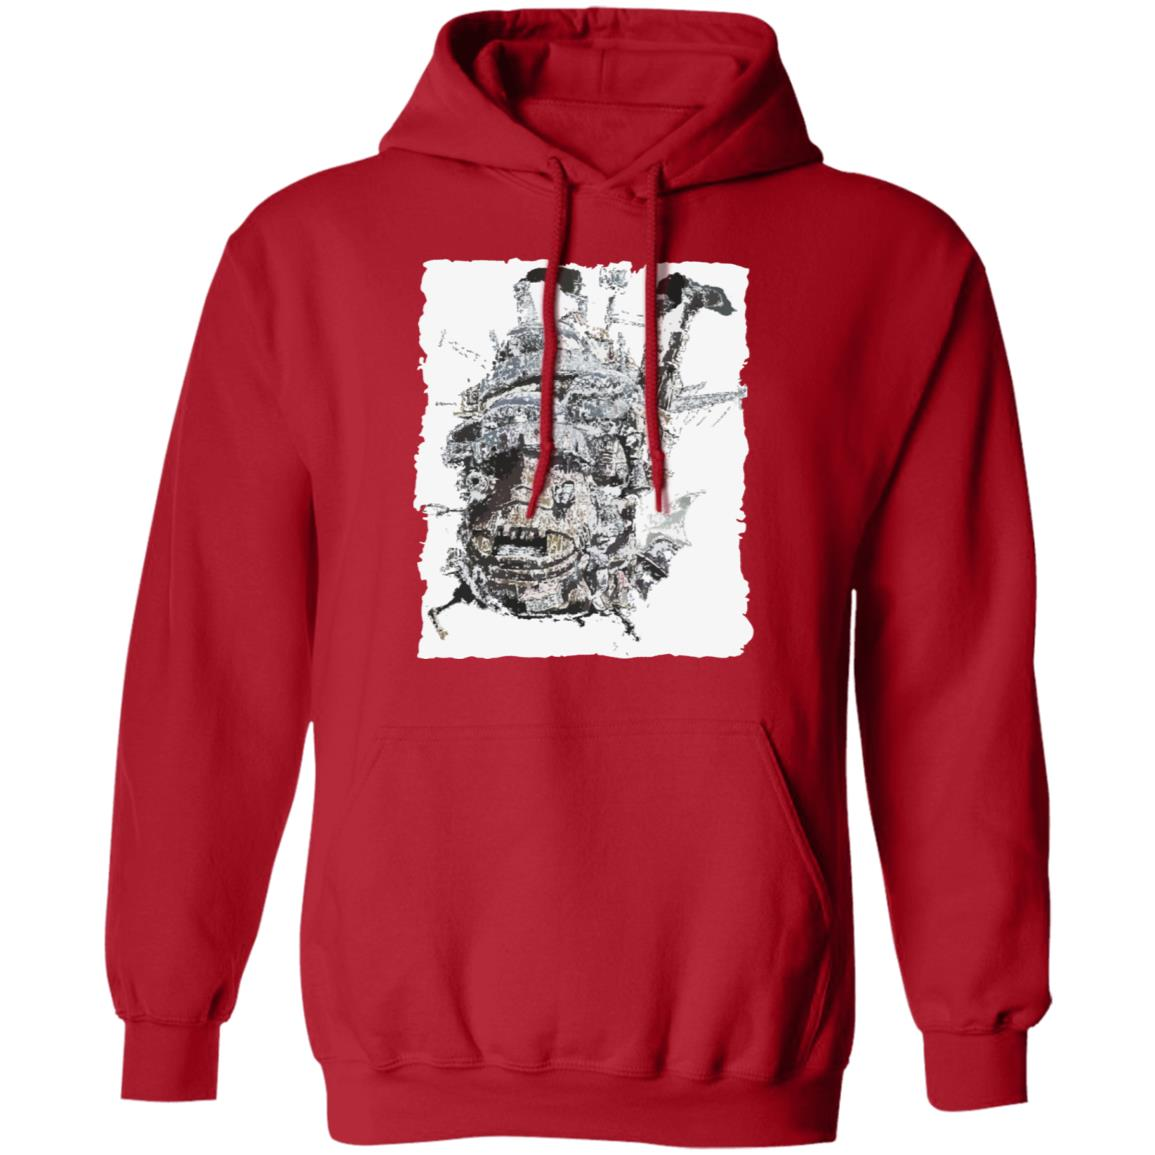 Howl's moving castle Essential Hoodie Unisex